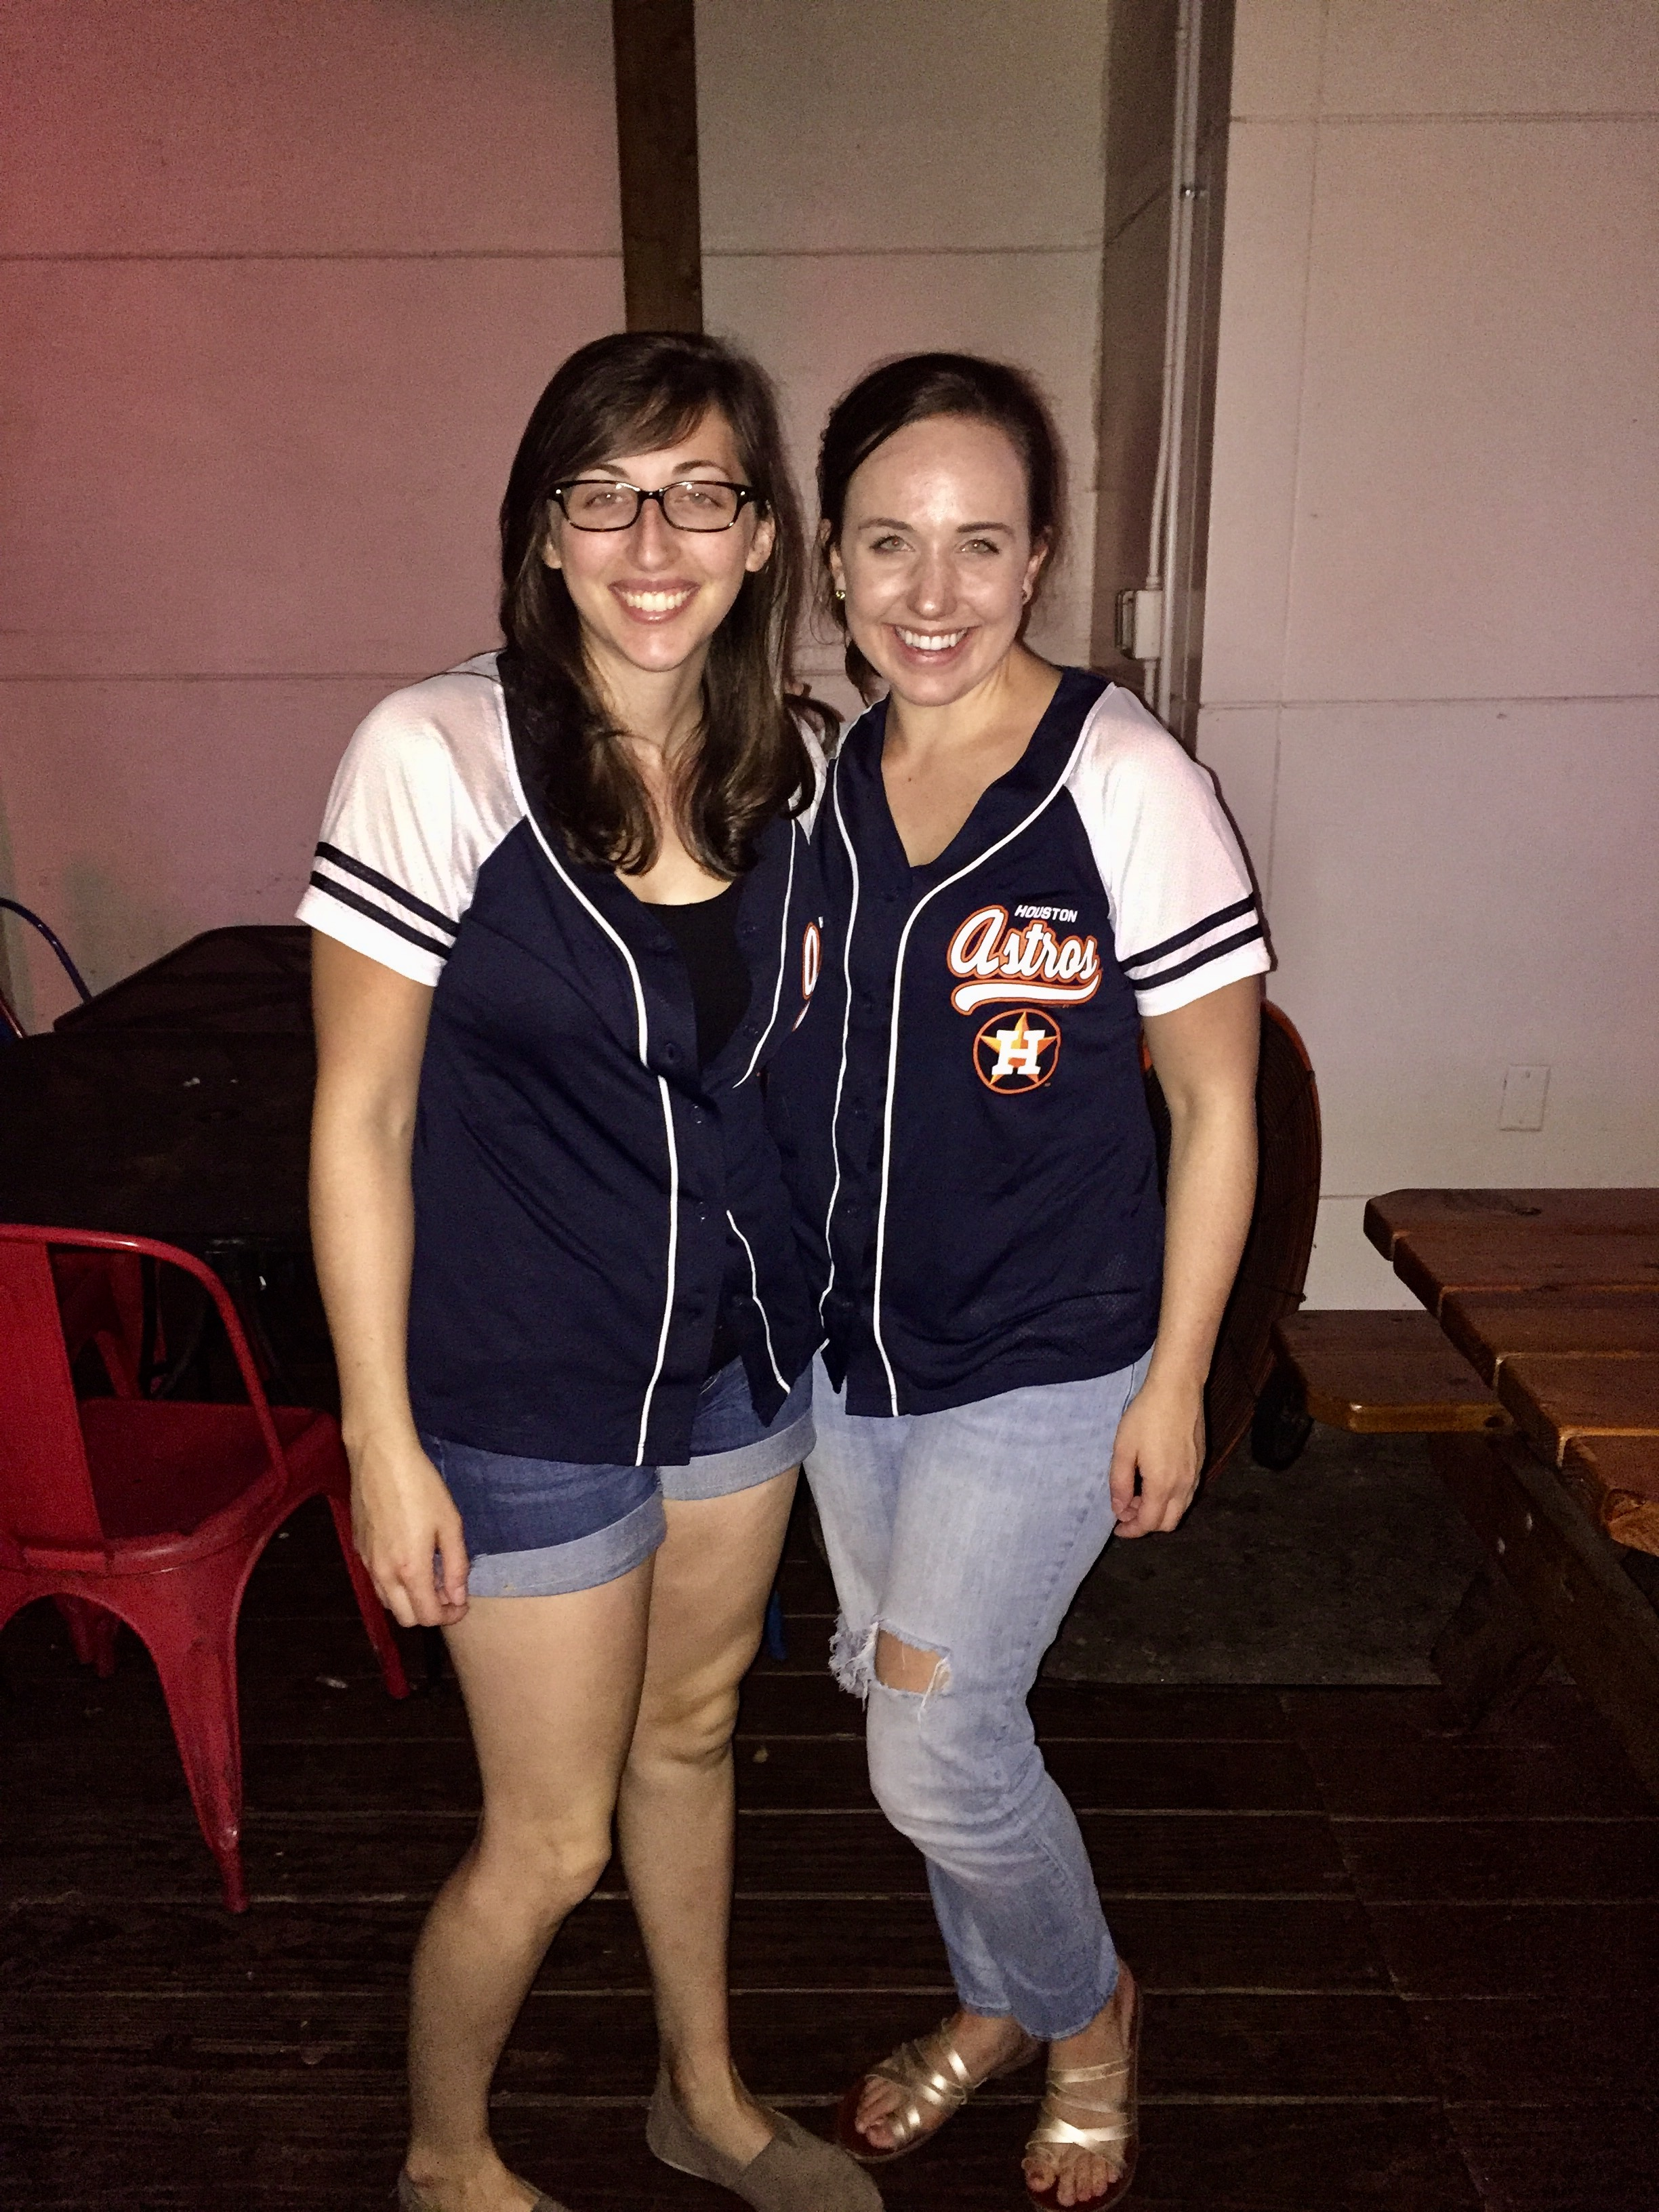 Erica and Carol cheer on the Astros in the new matching jerseys.  Next Stop - WORLD SERIES!